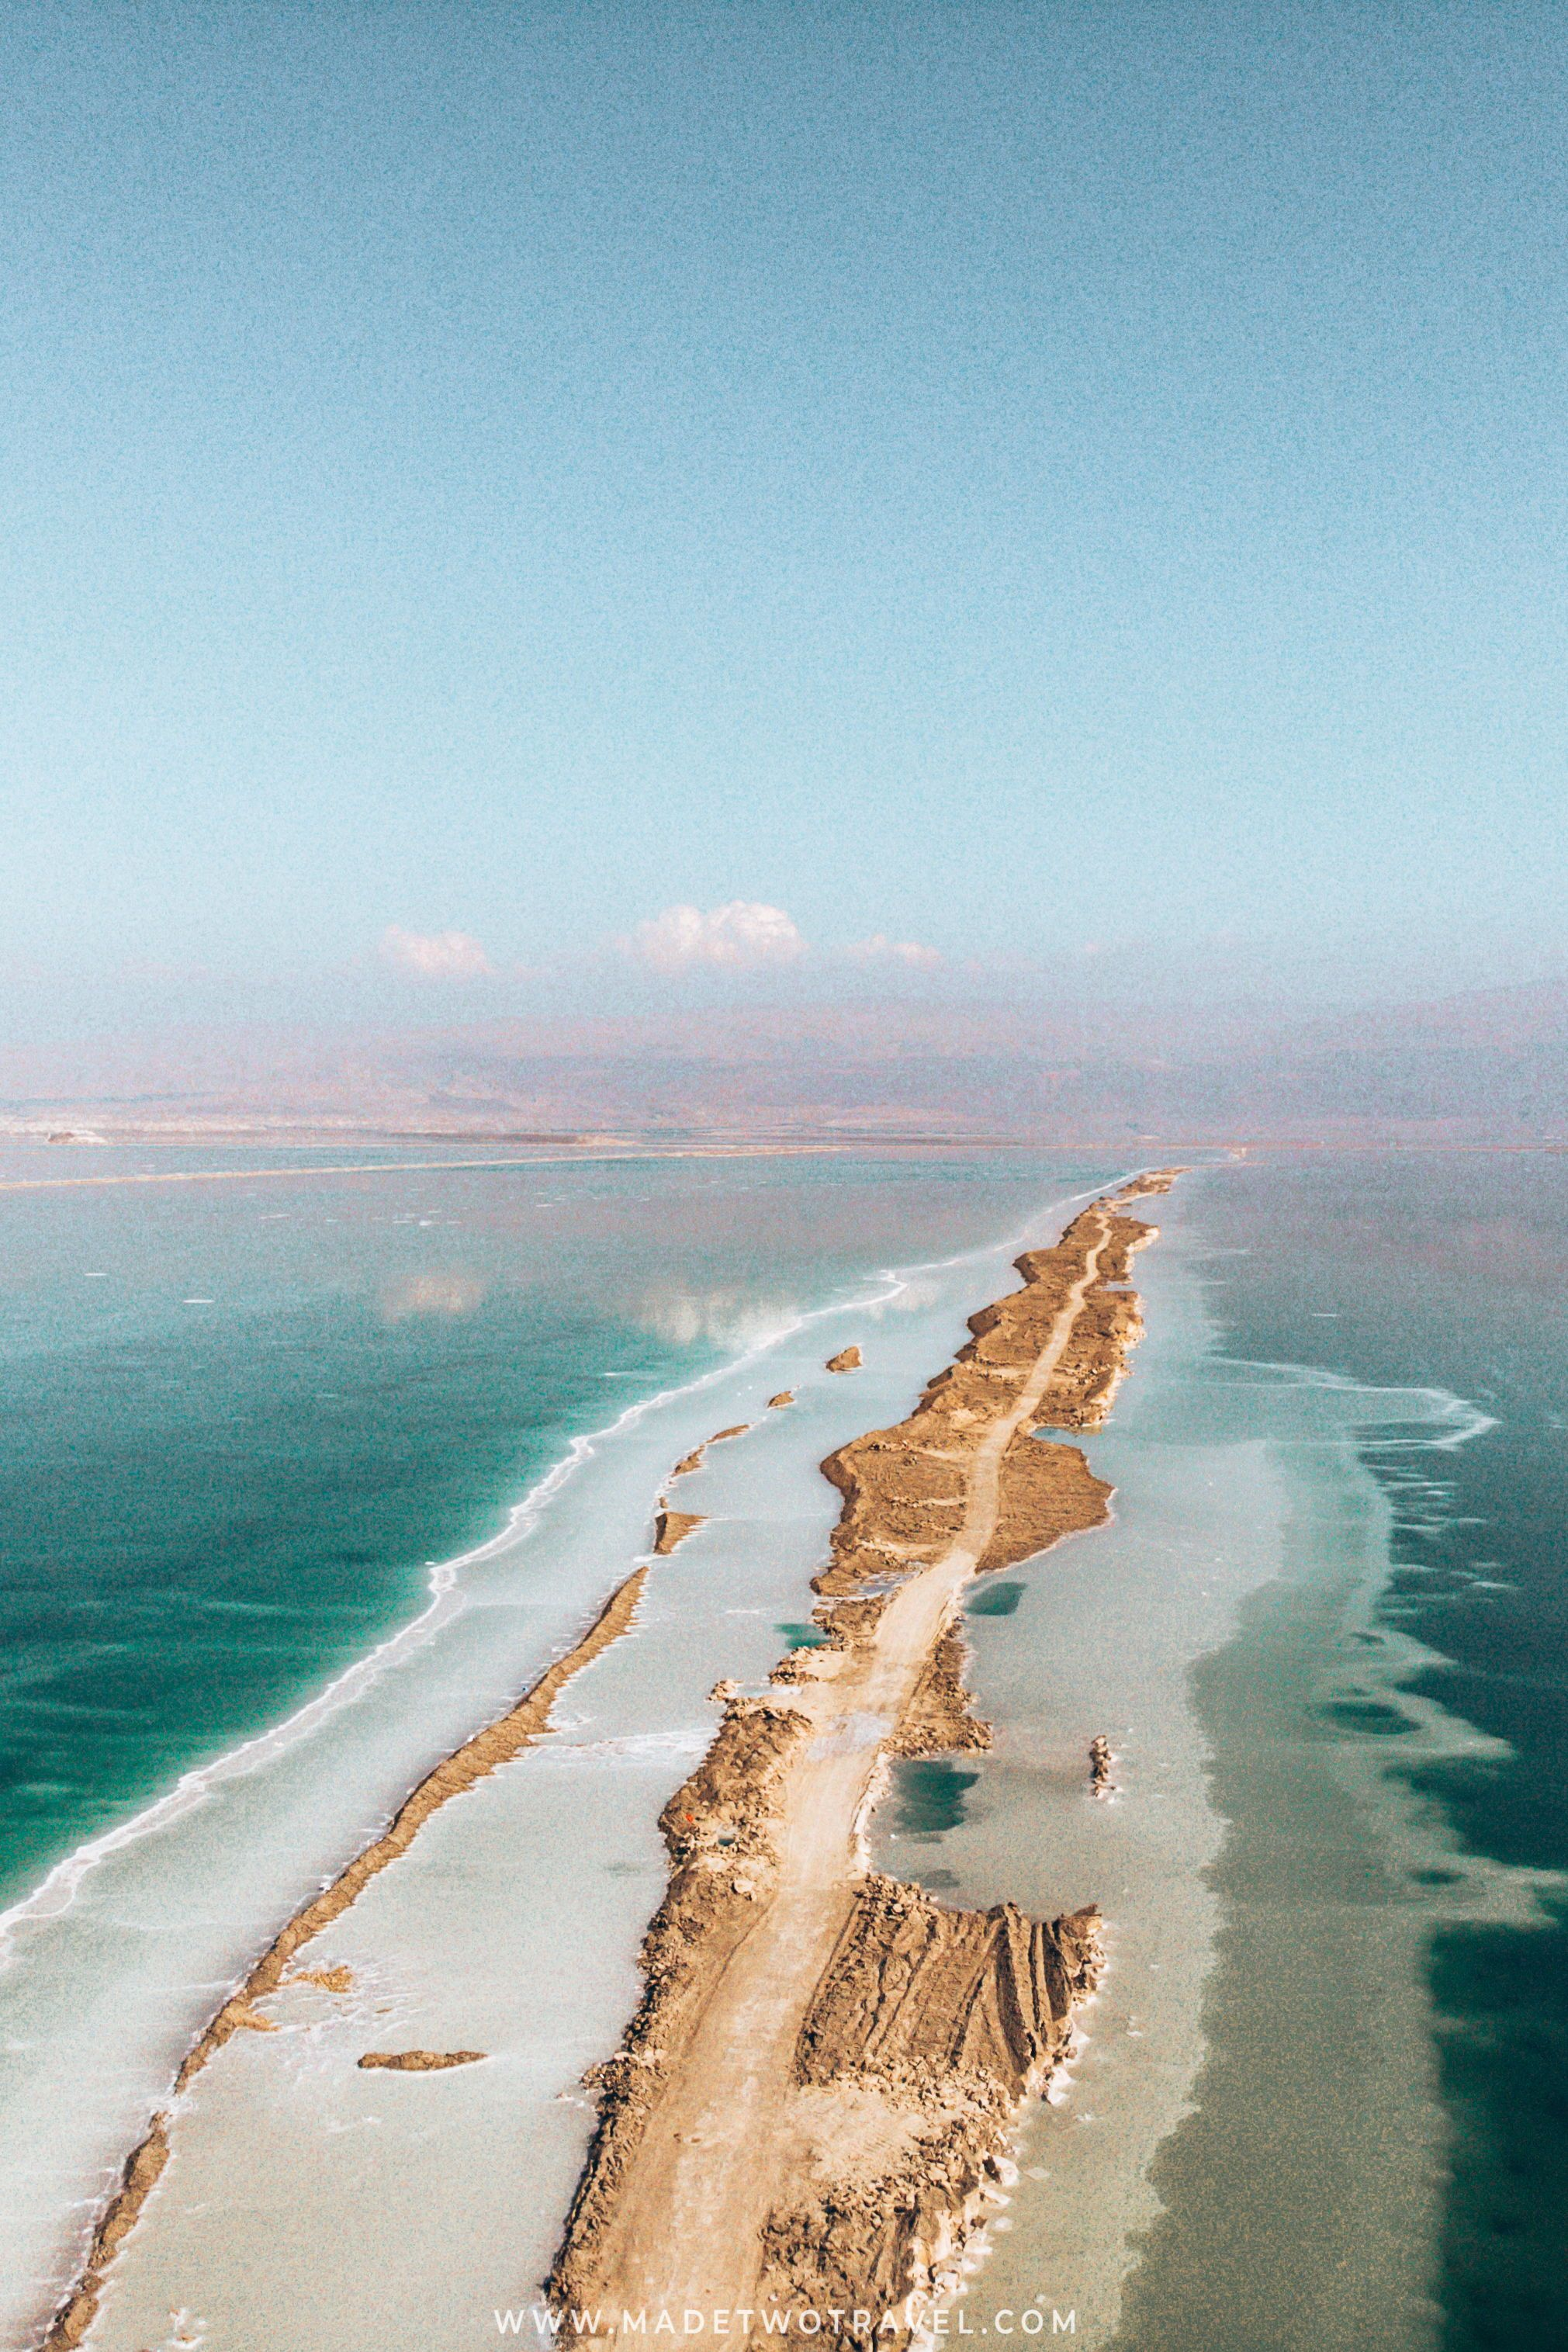 Dead Sea Vacation Tips For Your First Visit To The Lowest Point On Earth In 2020 Relaxing Travel Travel Photography Inspiration Places To Travel